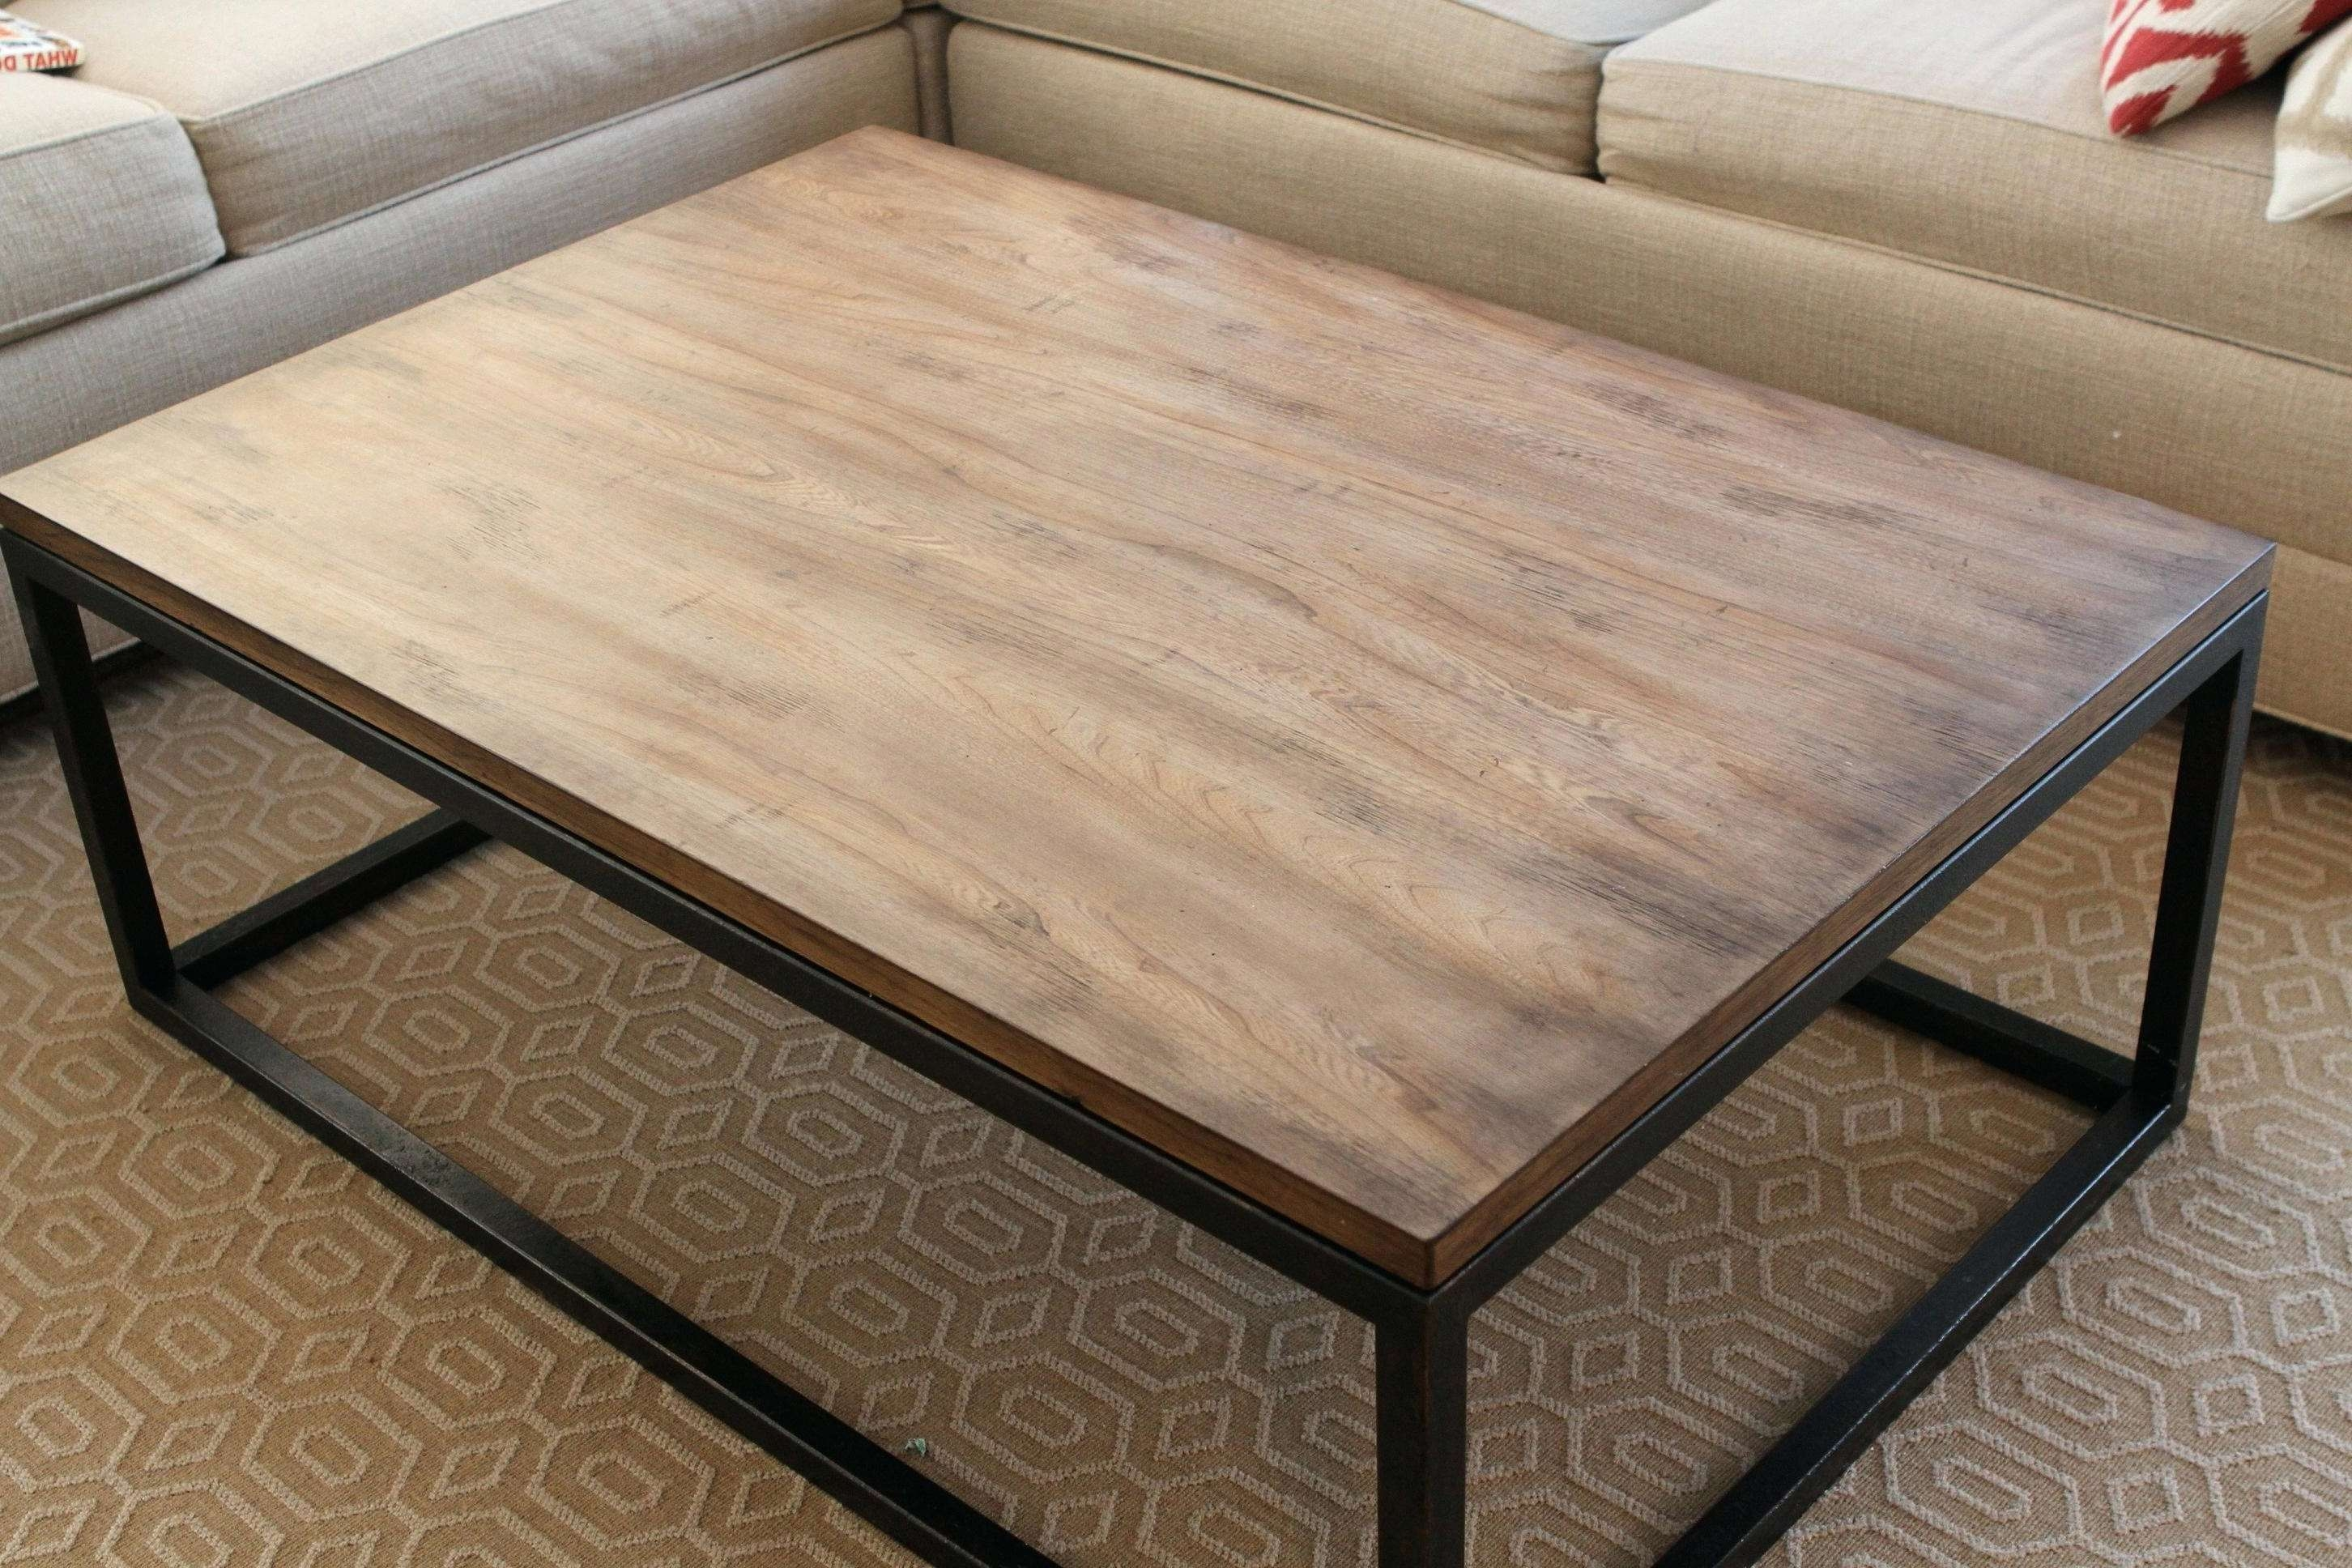 How To Baby Proof Coffee Table Design With Tables Corners Photo Inside Newest Baby Proof Coffee Tables Corners (View 8 of 20)